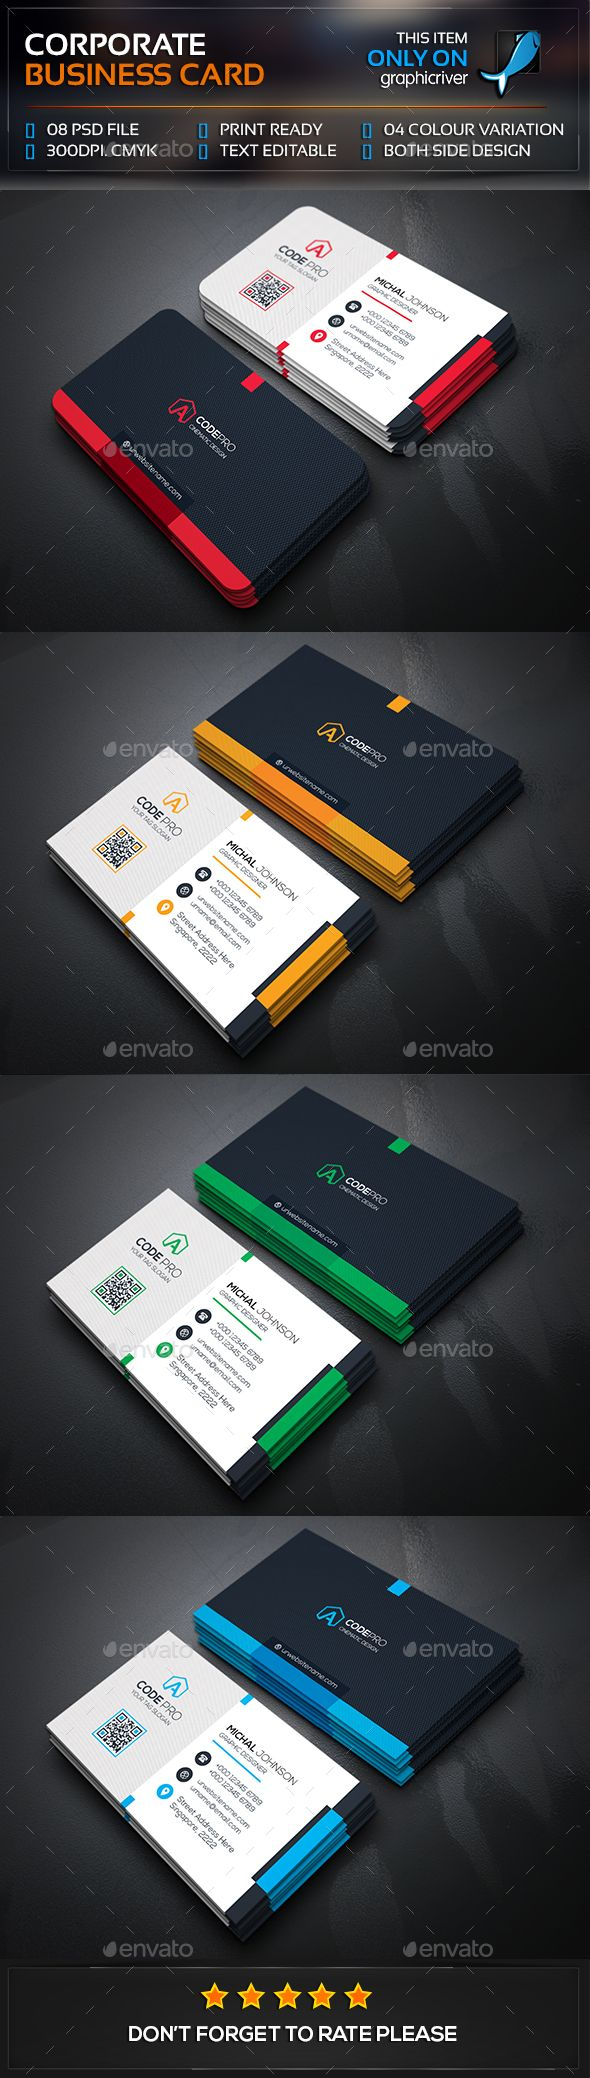 Mega corporate business card template psd visitcard design mega corporate business card template psd visitcard design download http reheart Image collections